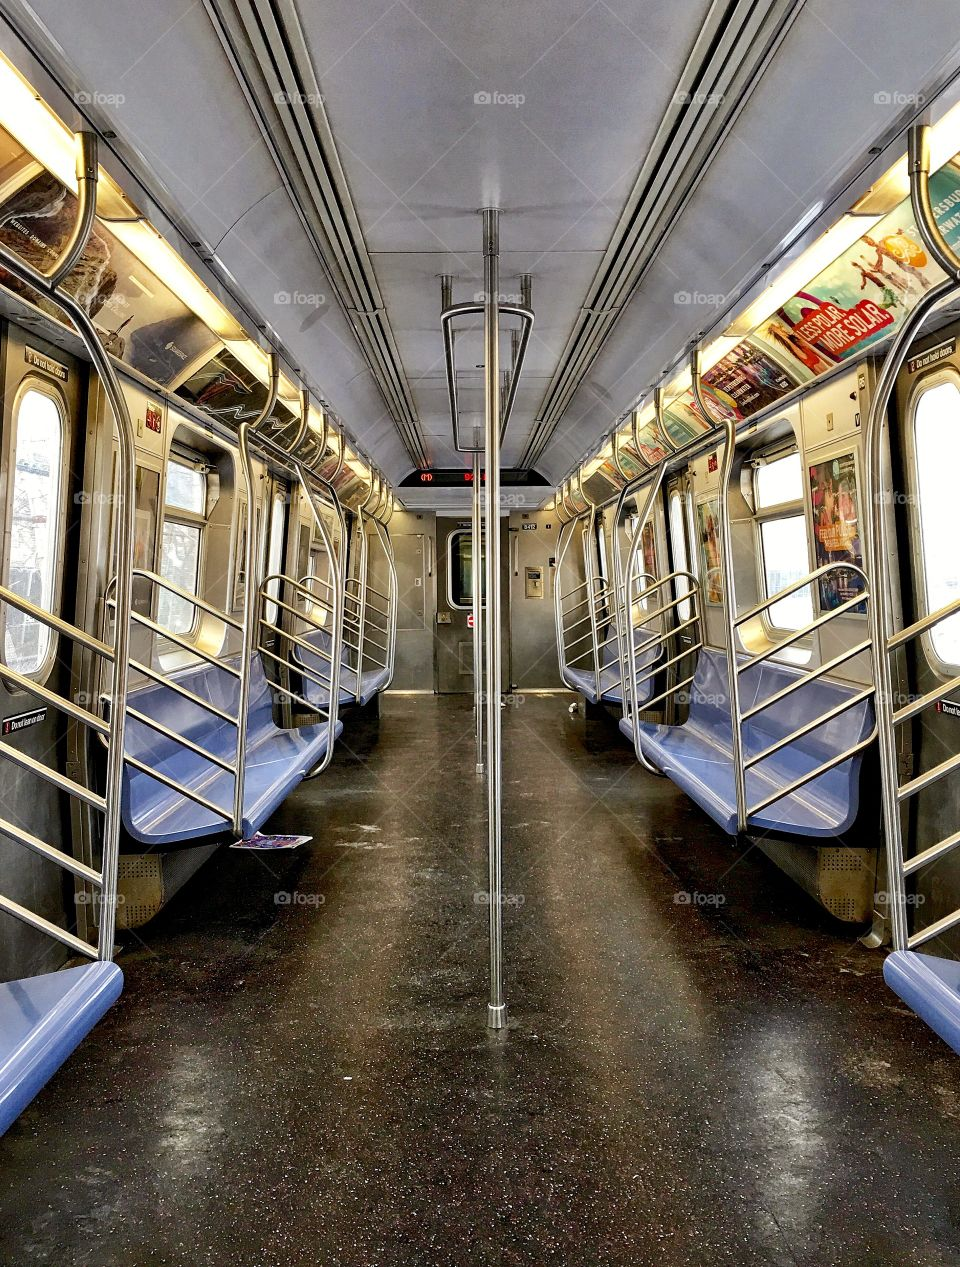 The Last Stop on the M Train, Queens, New York